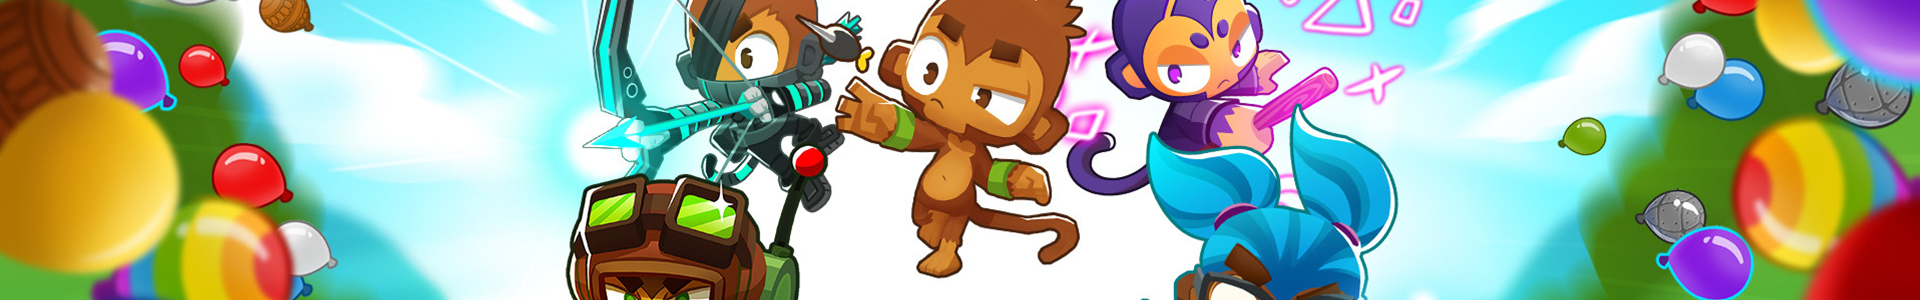 Banner media of Bloons TD 6 video game.